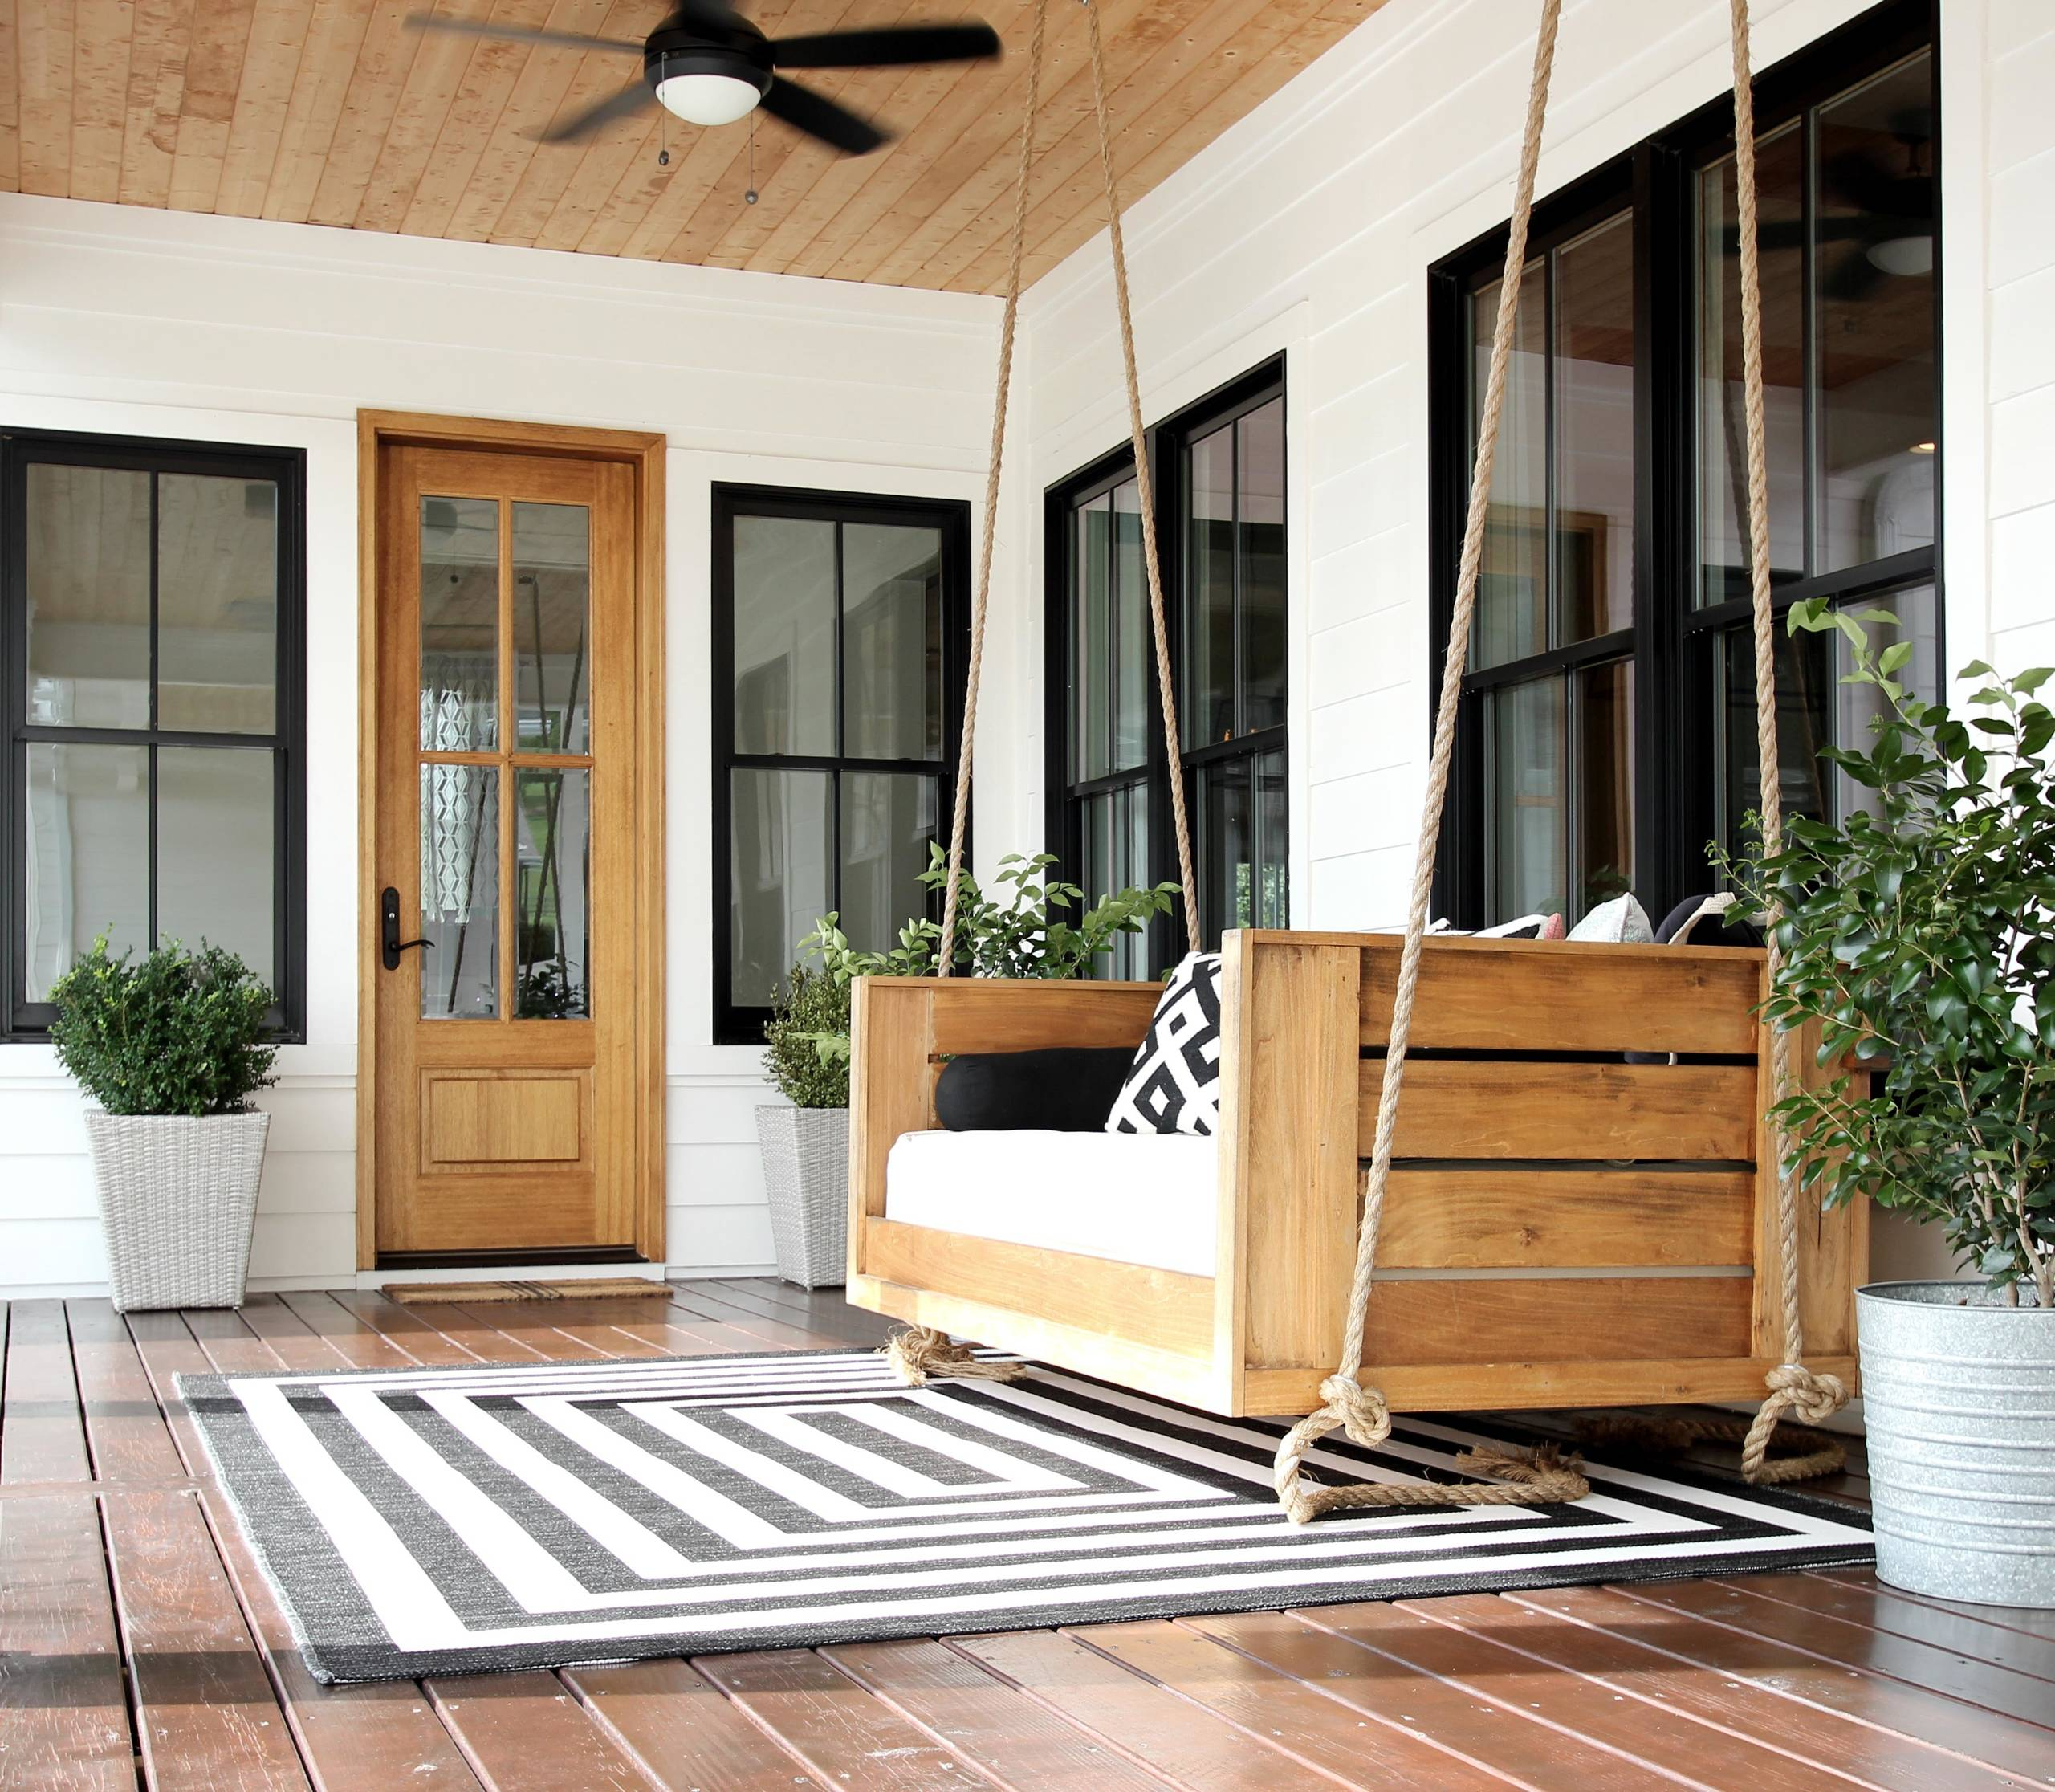 Farmhouse Porch With Decking